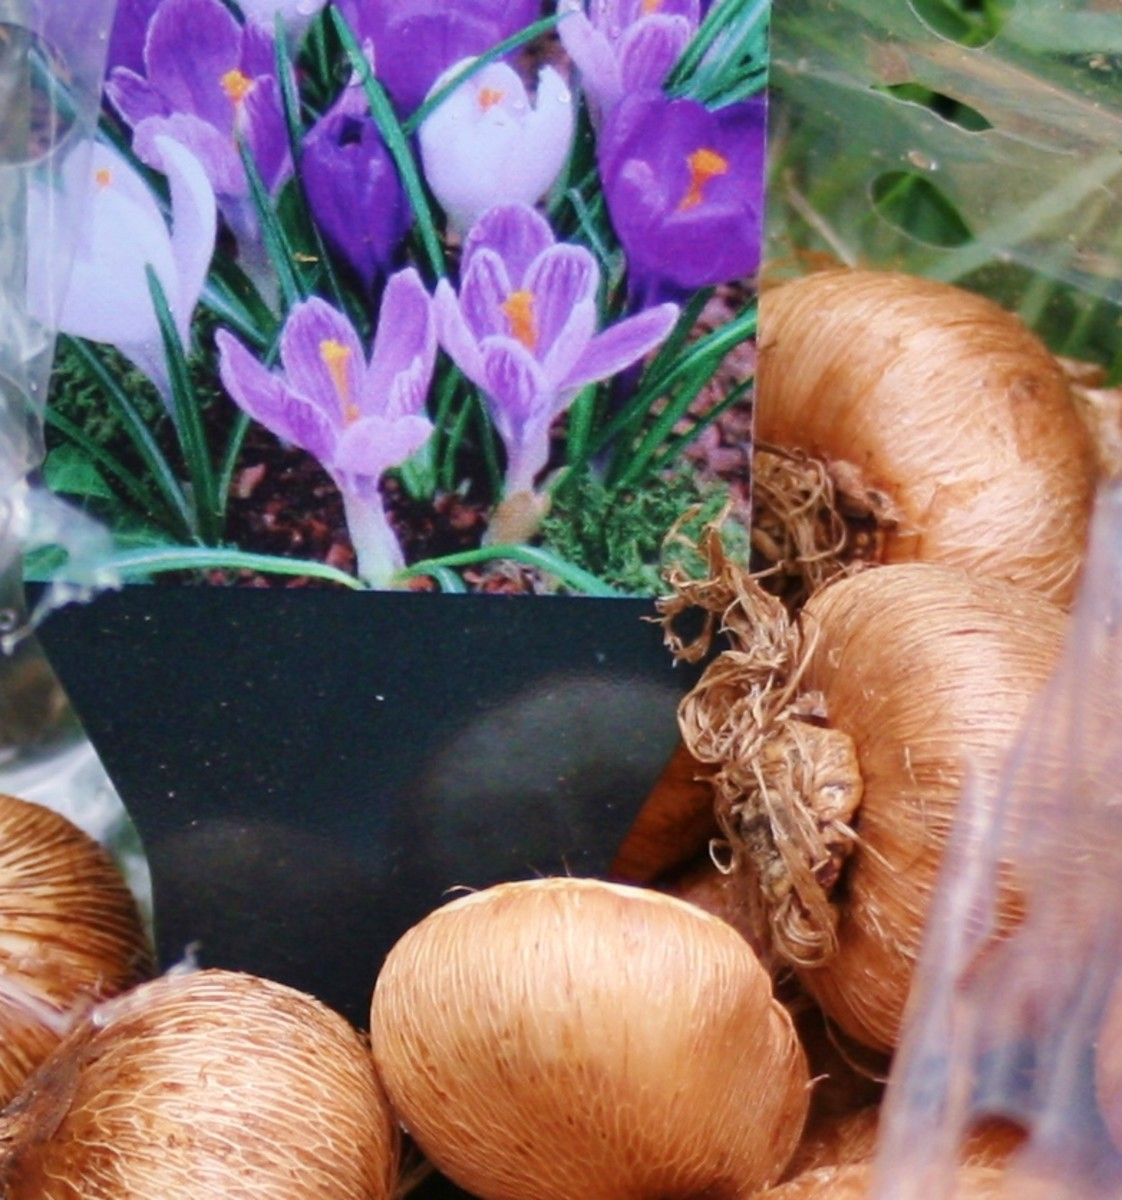 The crocus bulbs will be the  first  to bloom in our container garden, pushing their hardy shoots through the soil in late winter/early spring.